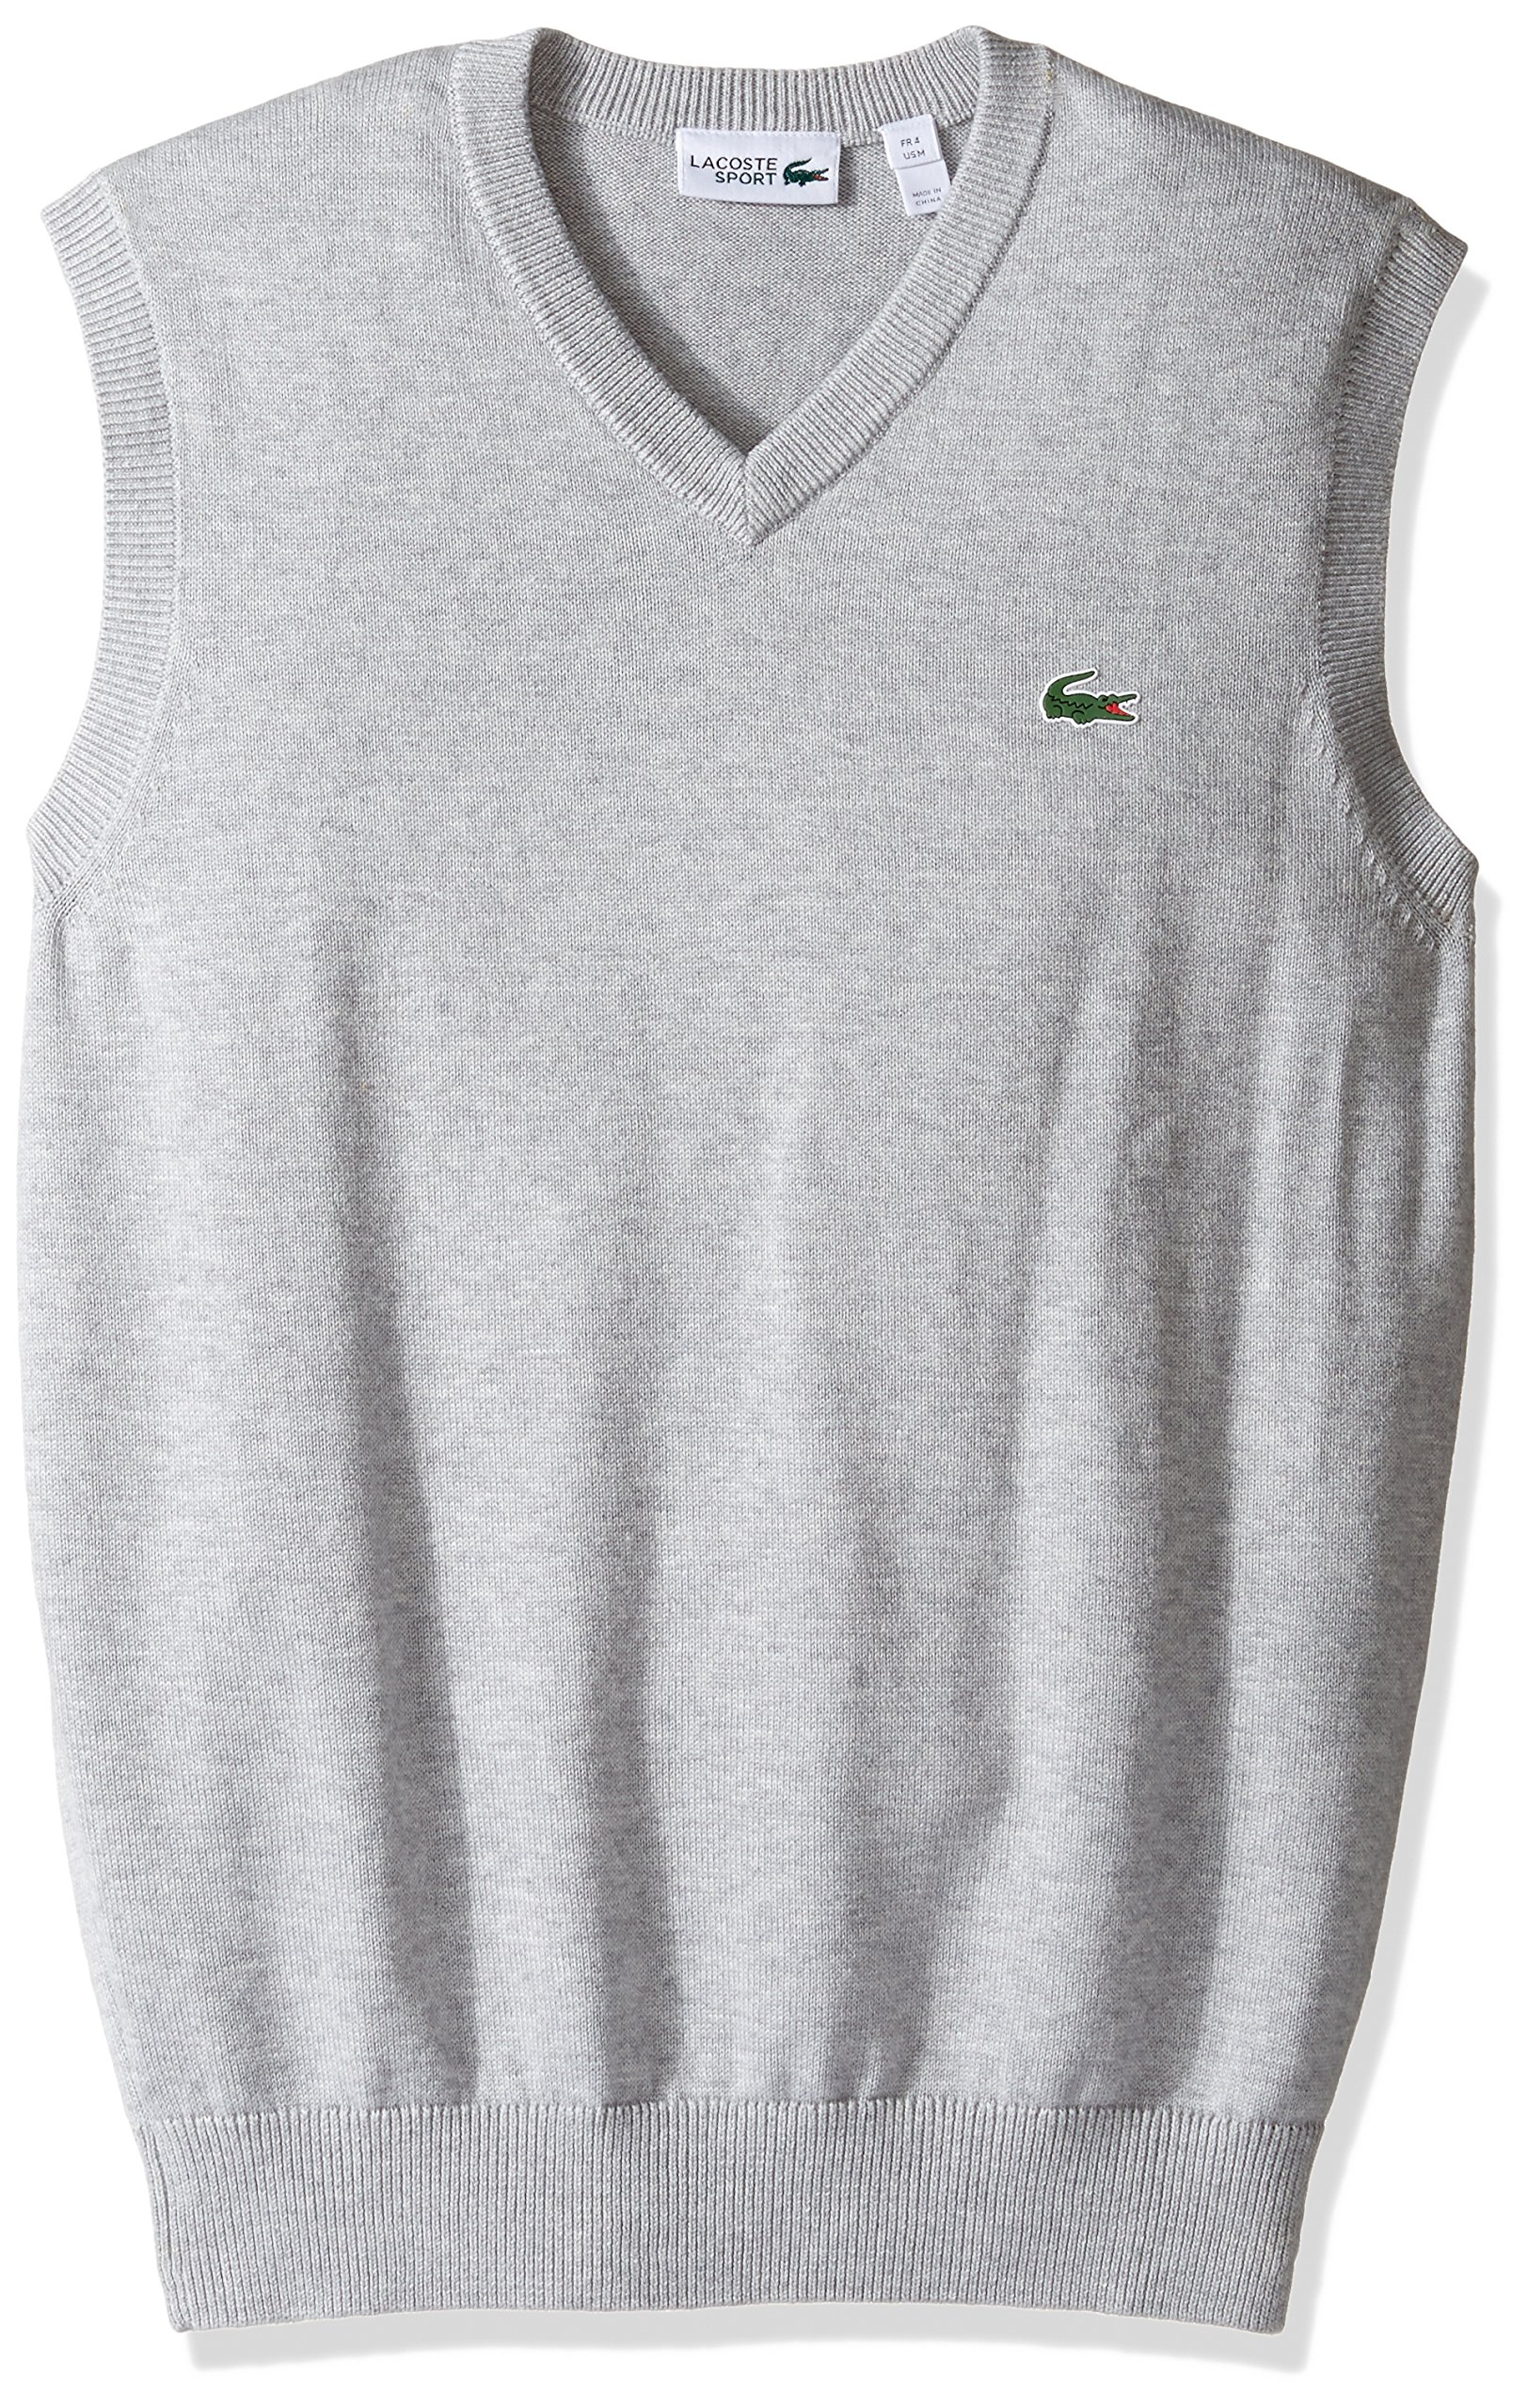 Lacoste Men's Golf Sweater Vest, AH2118-51, Silver Chine, XX-Large